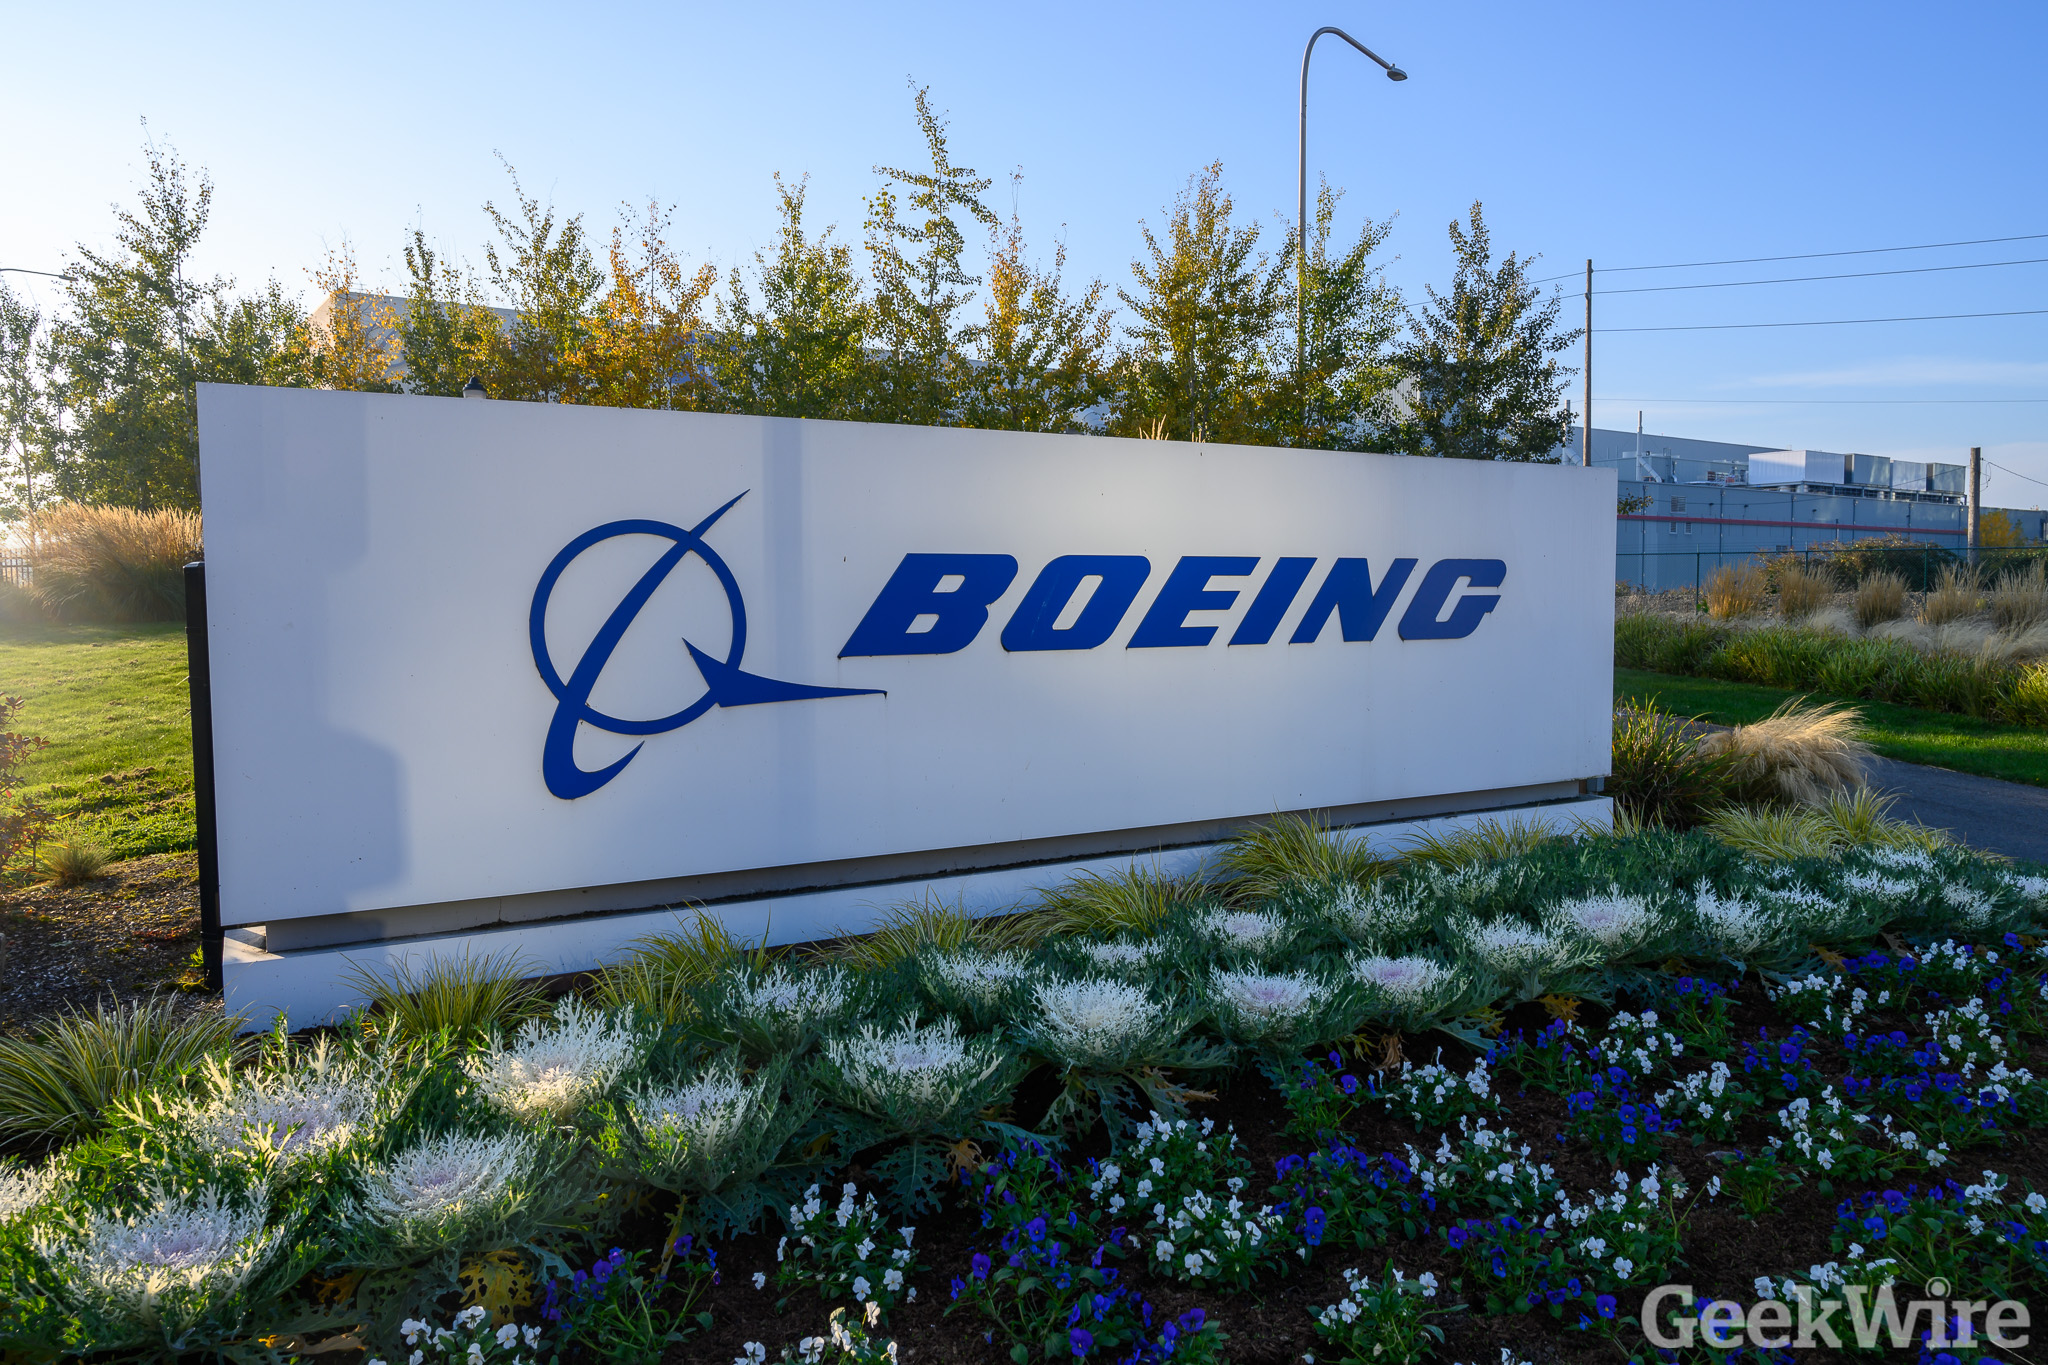 Boeing CEO says voluntary layoffs are on the way to adjust to 'new reality' in hard-hit airplane market